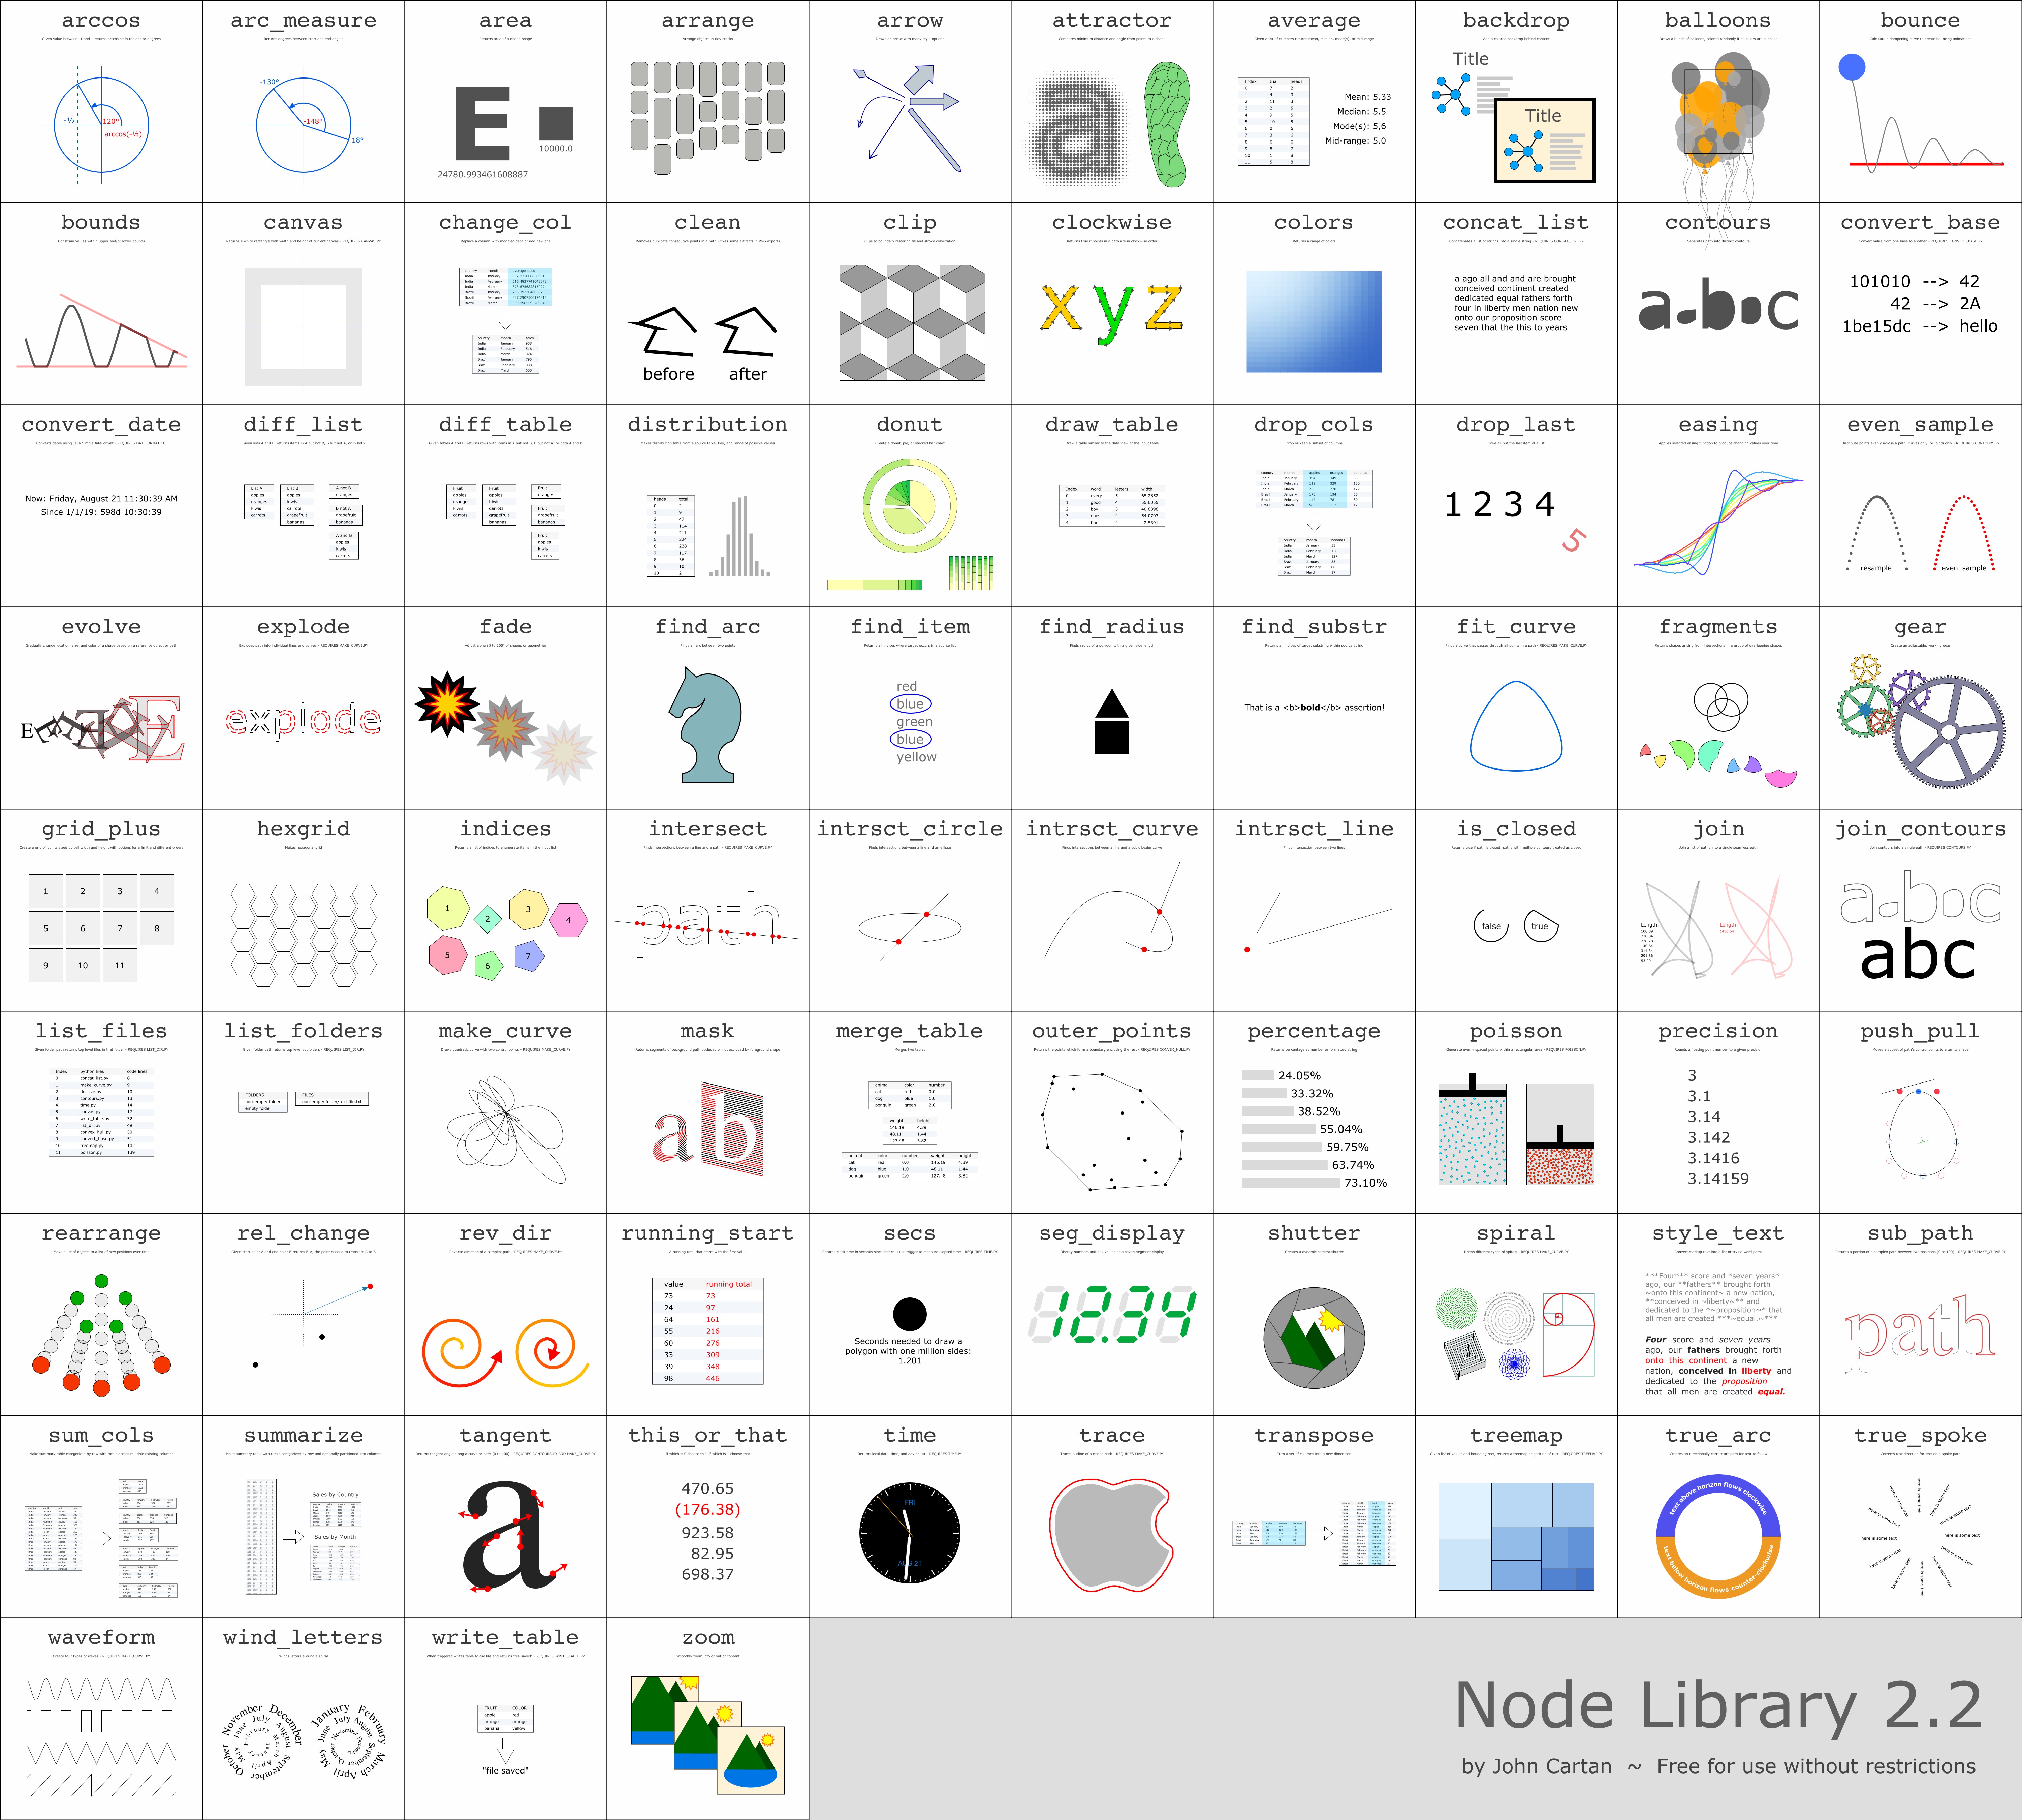 Node_library_2.2_poster